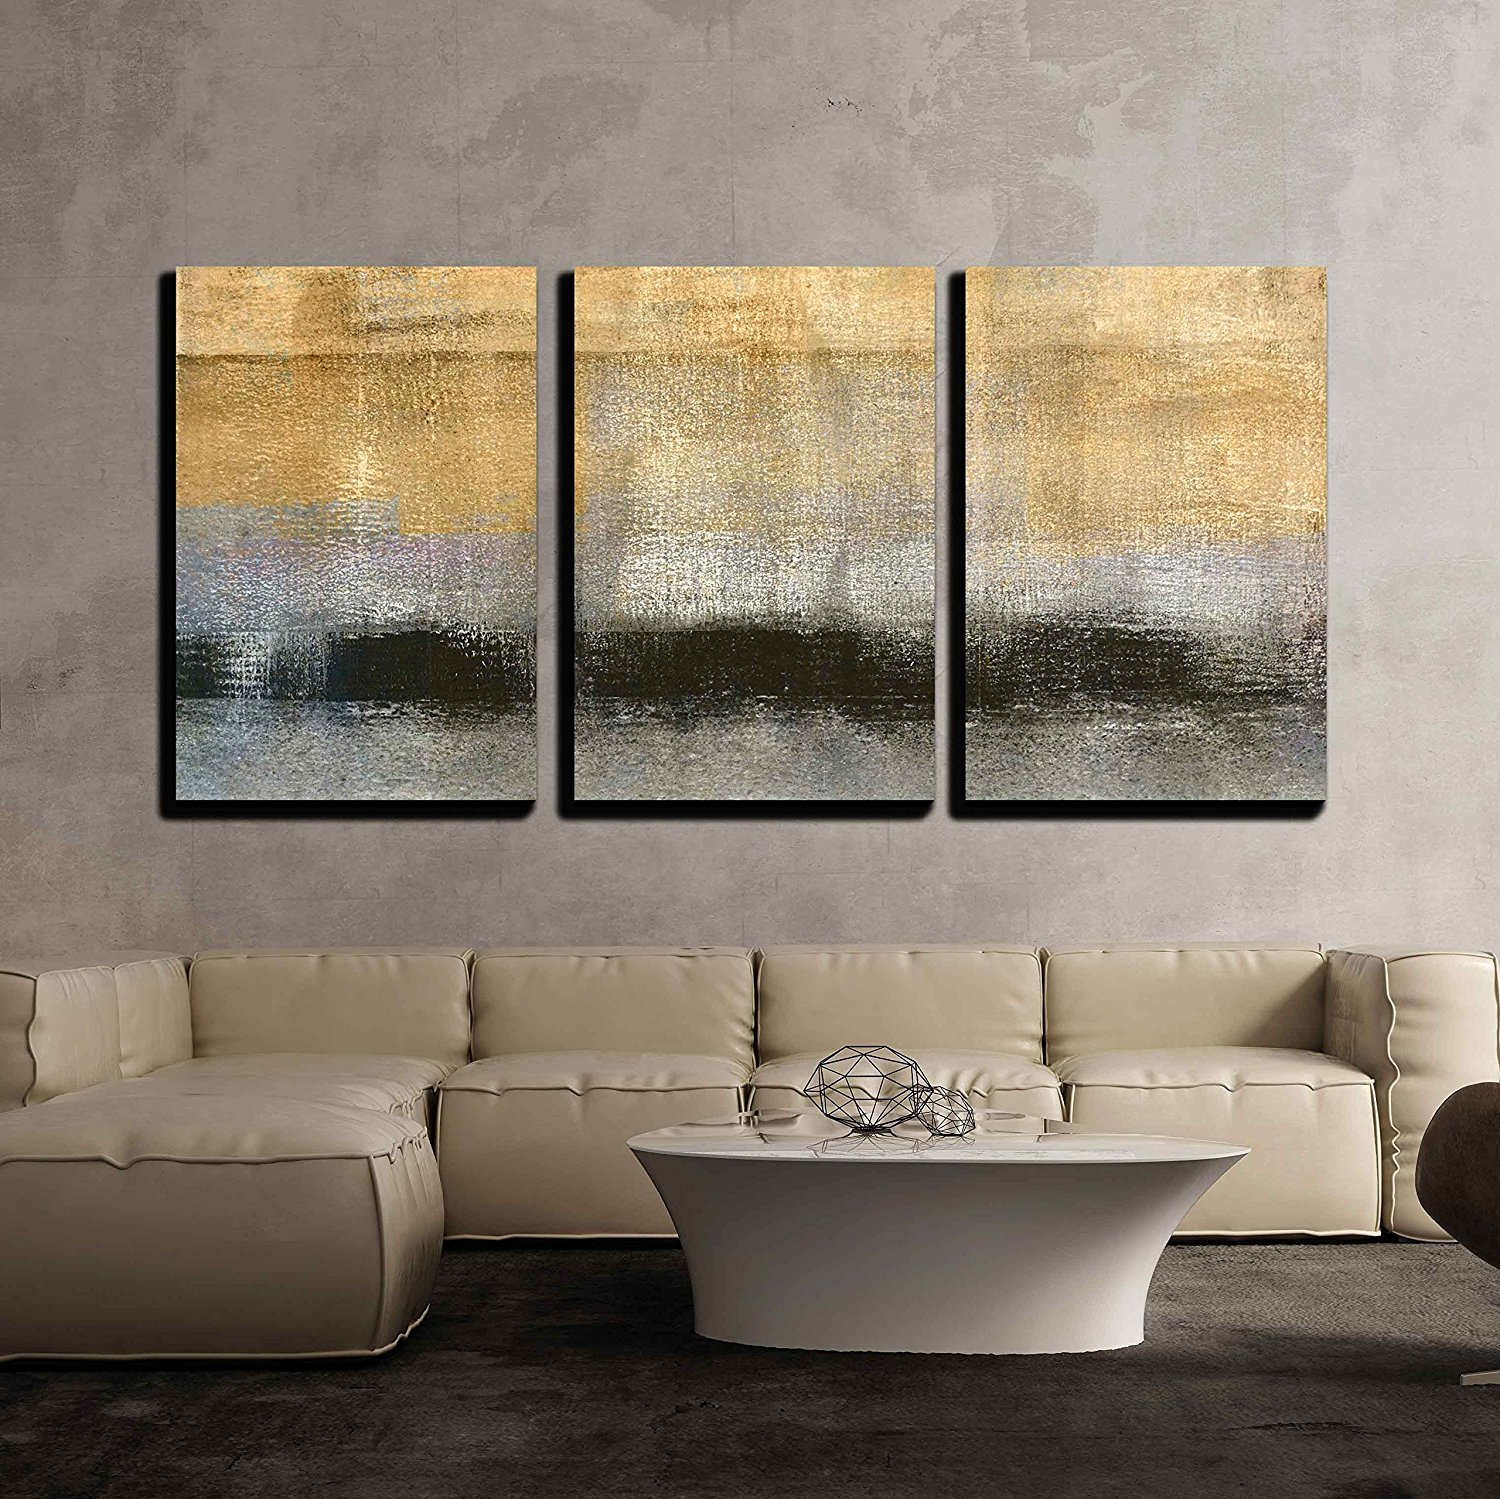 Wall26 3 Piece Canvas Wall Art Beautiful Scenery With The Seas Of Cloud At Sunset Modern Home Decor Stretched And Framed Ready To Hang 24 X36 X3